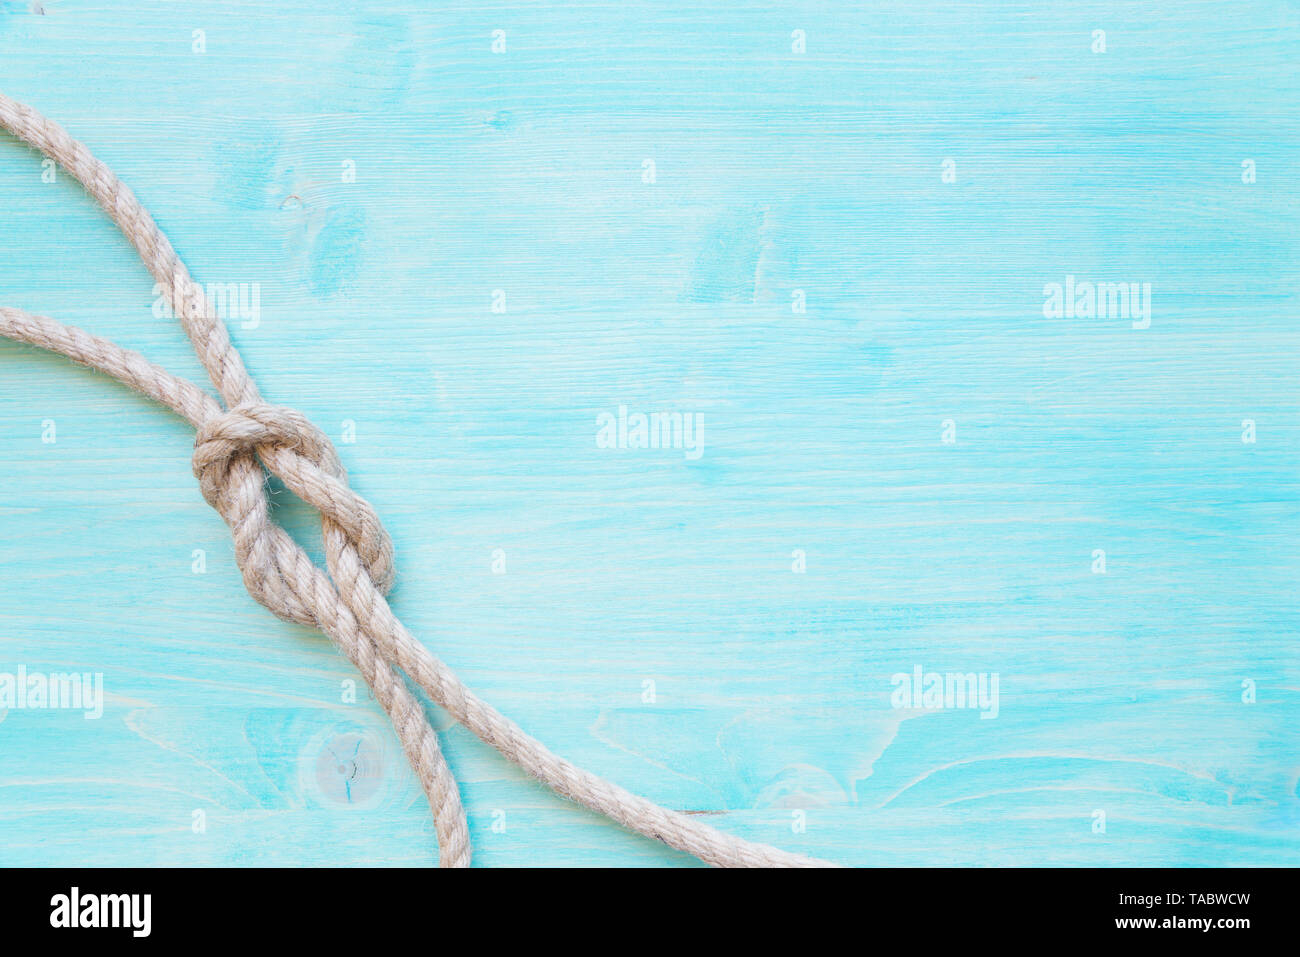 Rough hemp rope tied knot sea is on the background of blue faded wooden planks. Marine concept - Stock Image